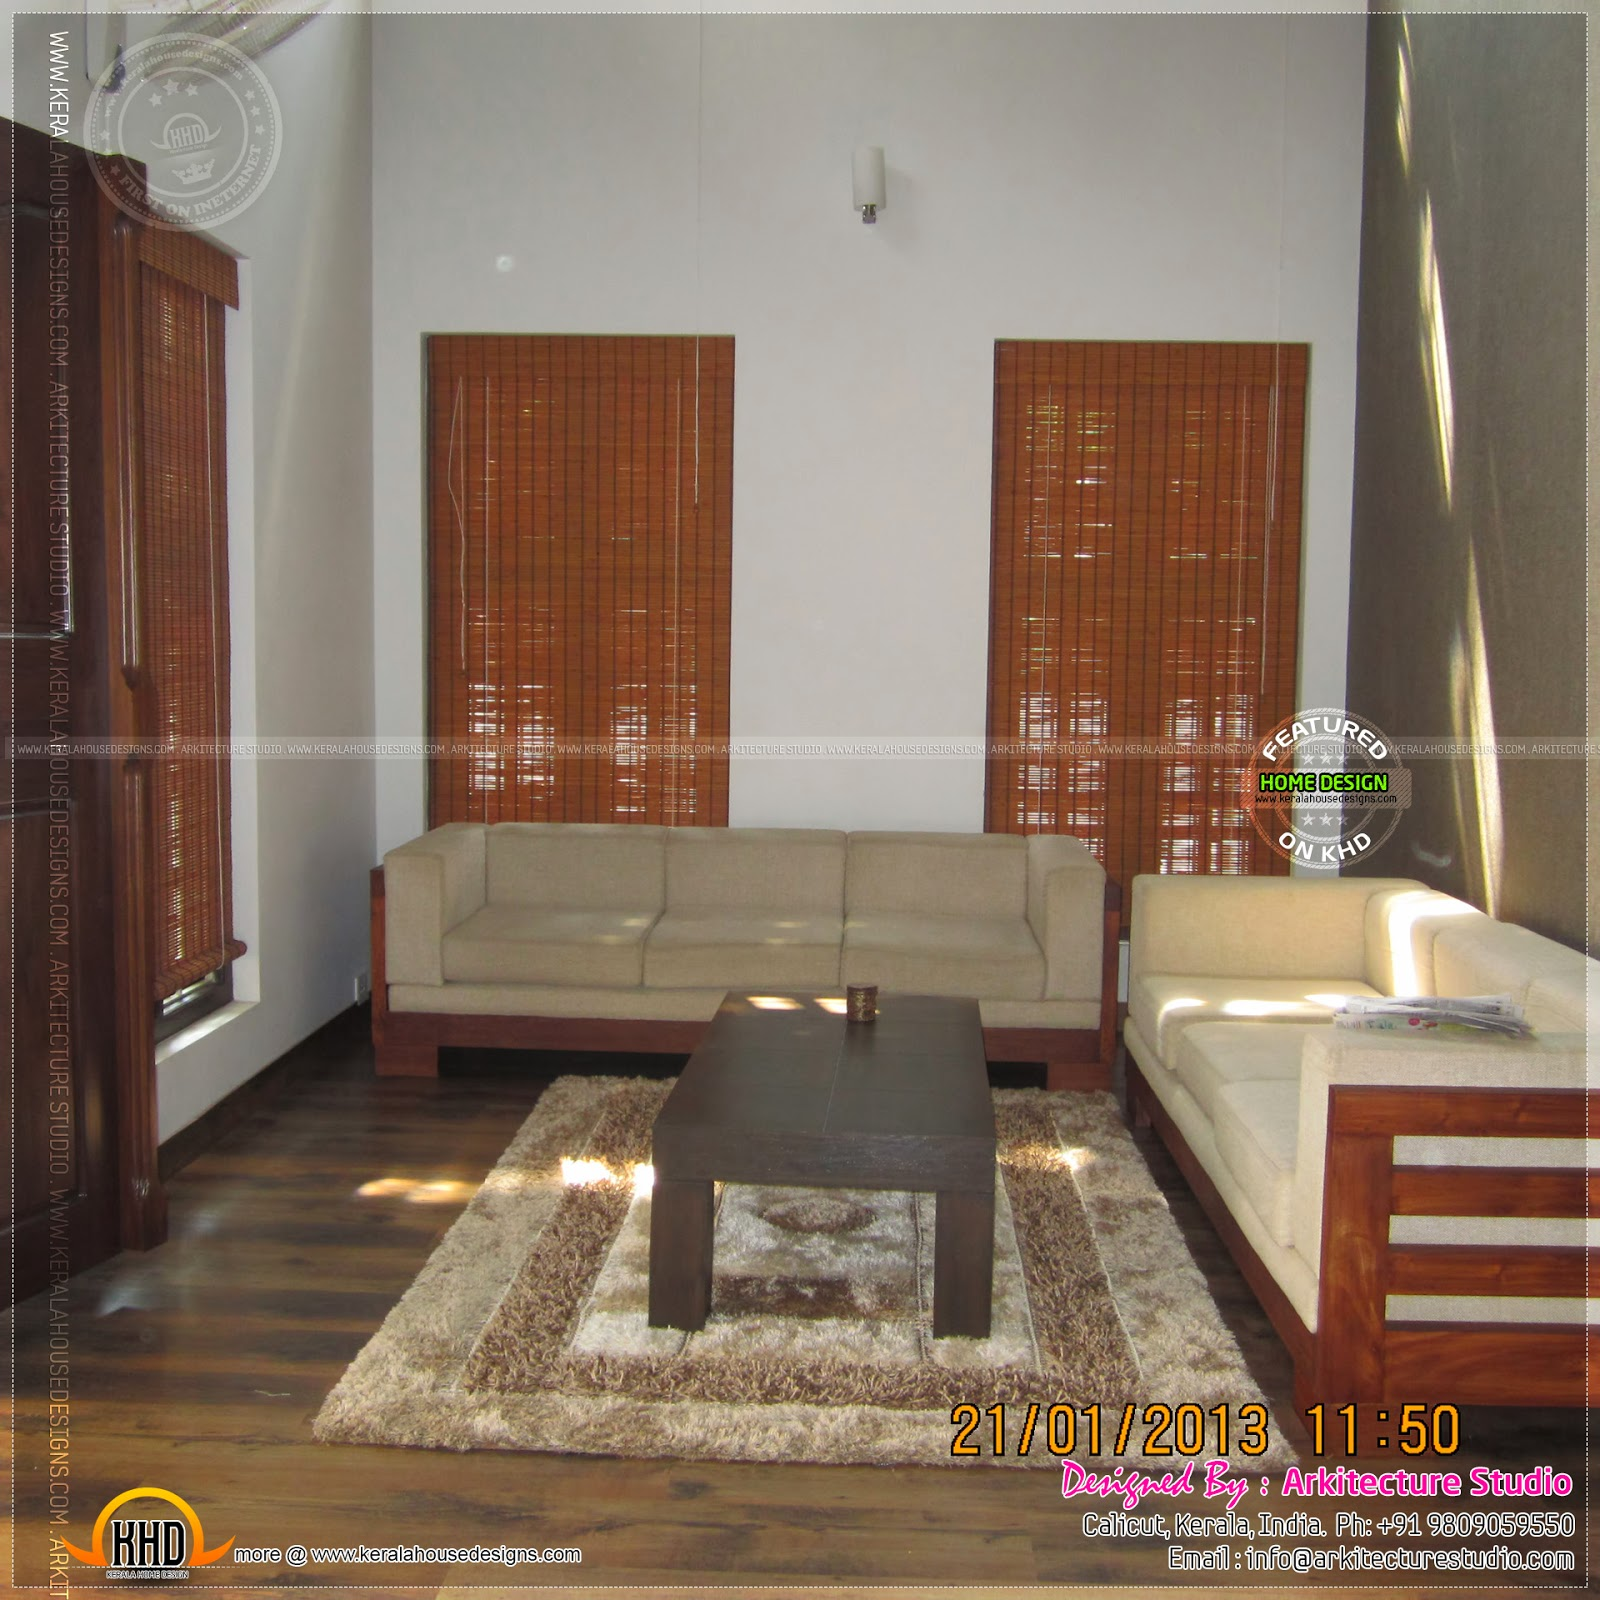 Kerala Home Interior Design: Finished House With Photograph Of Interiors